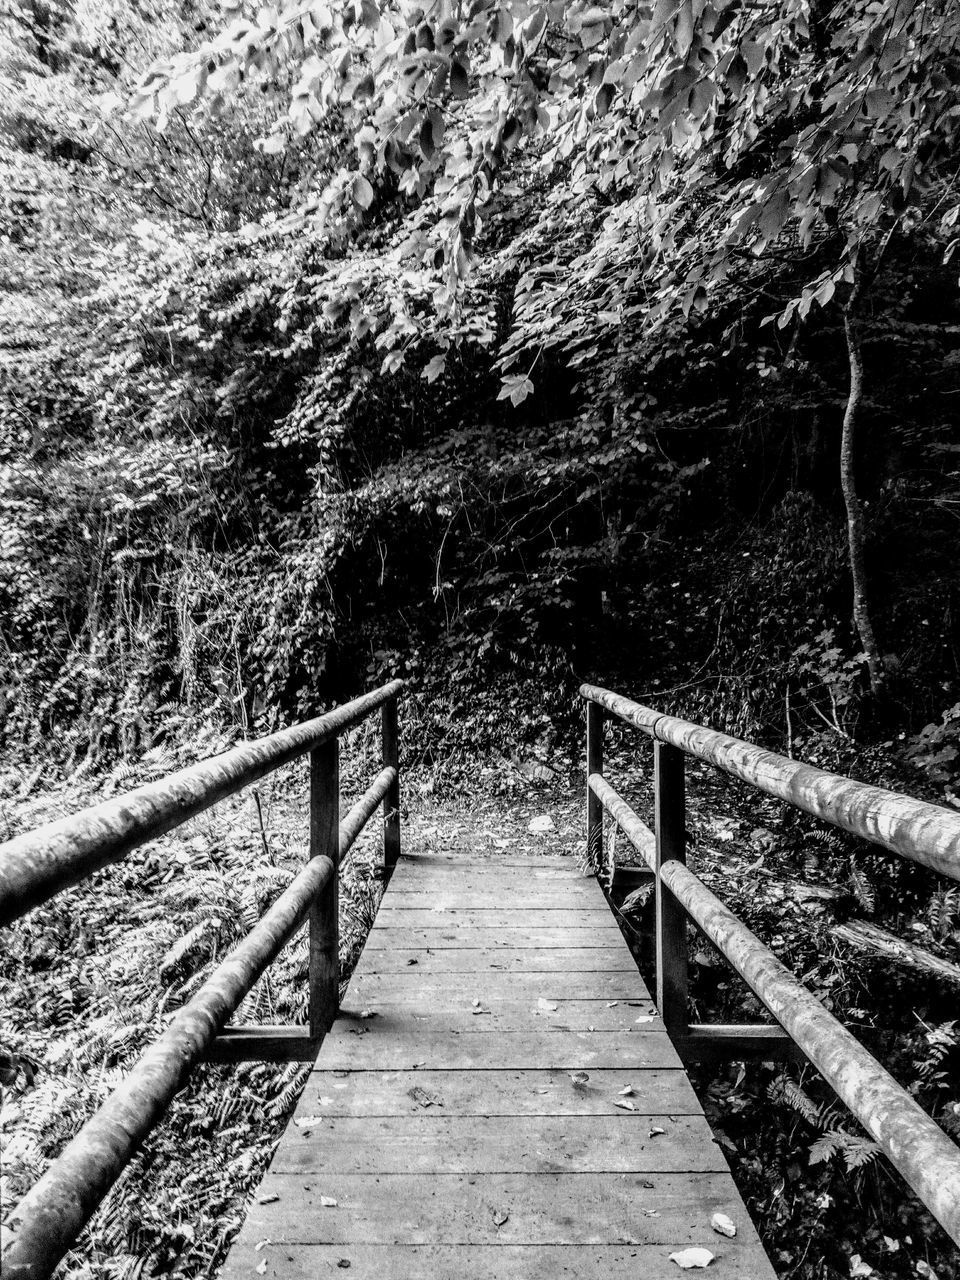 the way forward, tree, direction, railing, plant, bridge, land, forest, connection, wood - material, footbridge, nature, day, built structure, architecture, no people, tranquility, bridge - man made structure, footpath, outdoors, diminishing perspective, wood, long